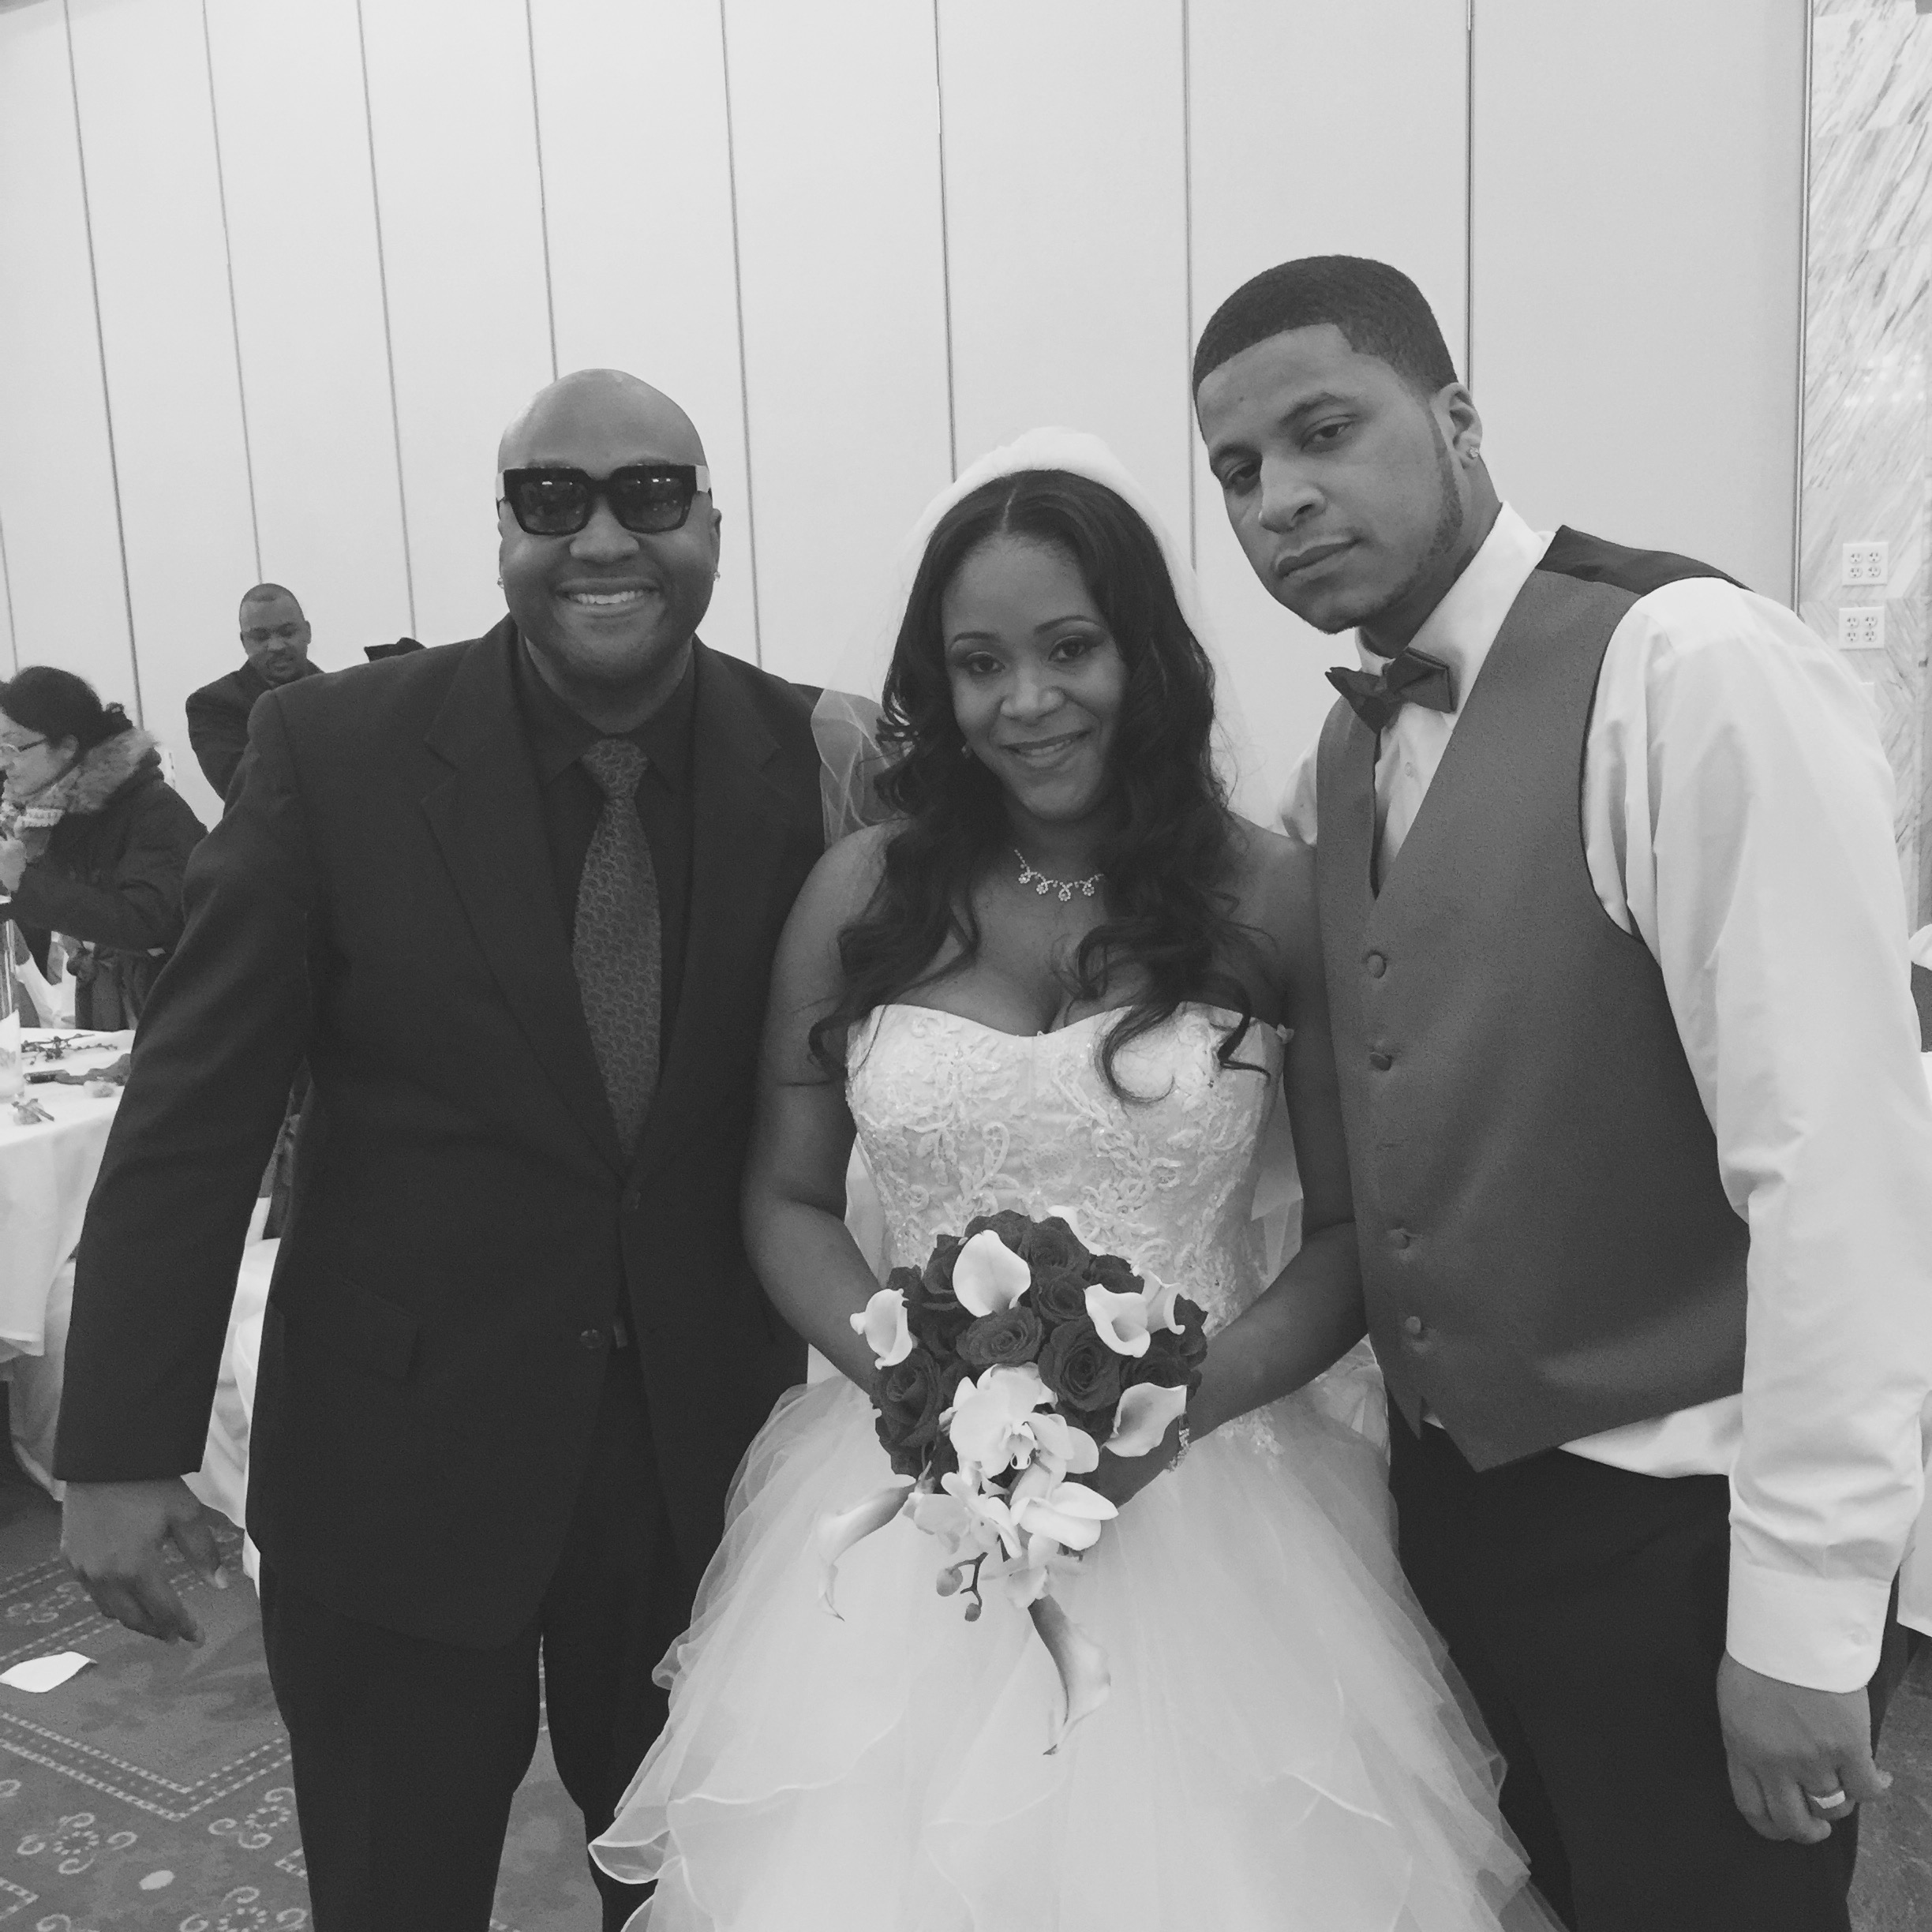 DJ D JONES CHICAGO BEST WEDDING BRIDE GROOM 013.jpg